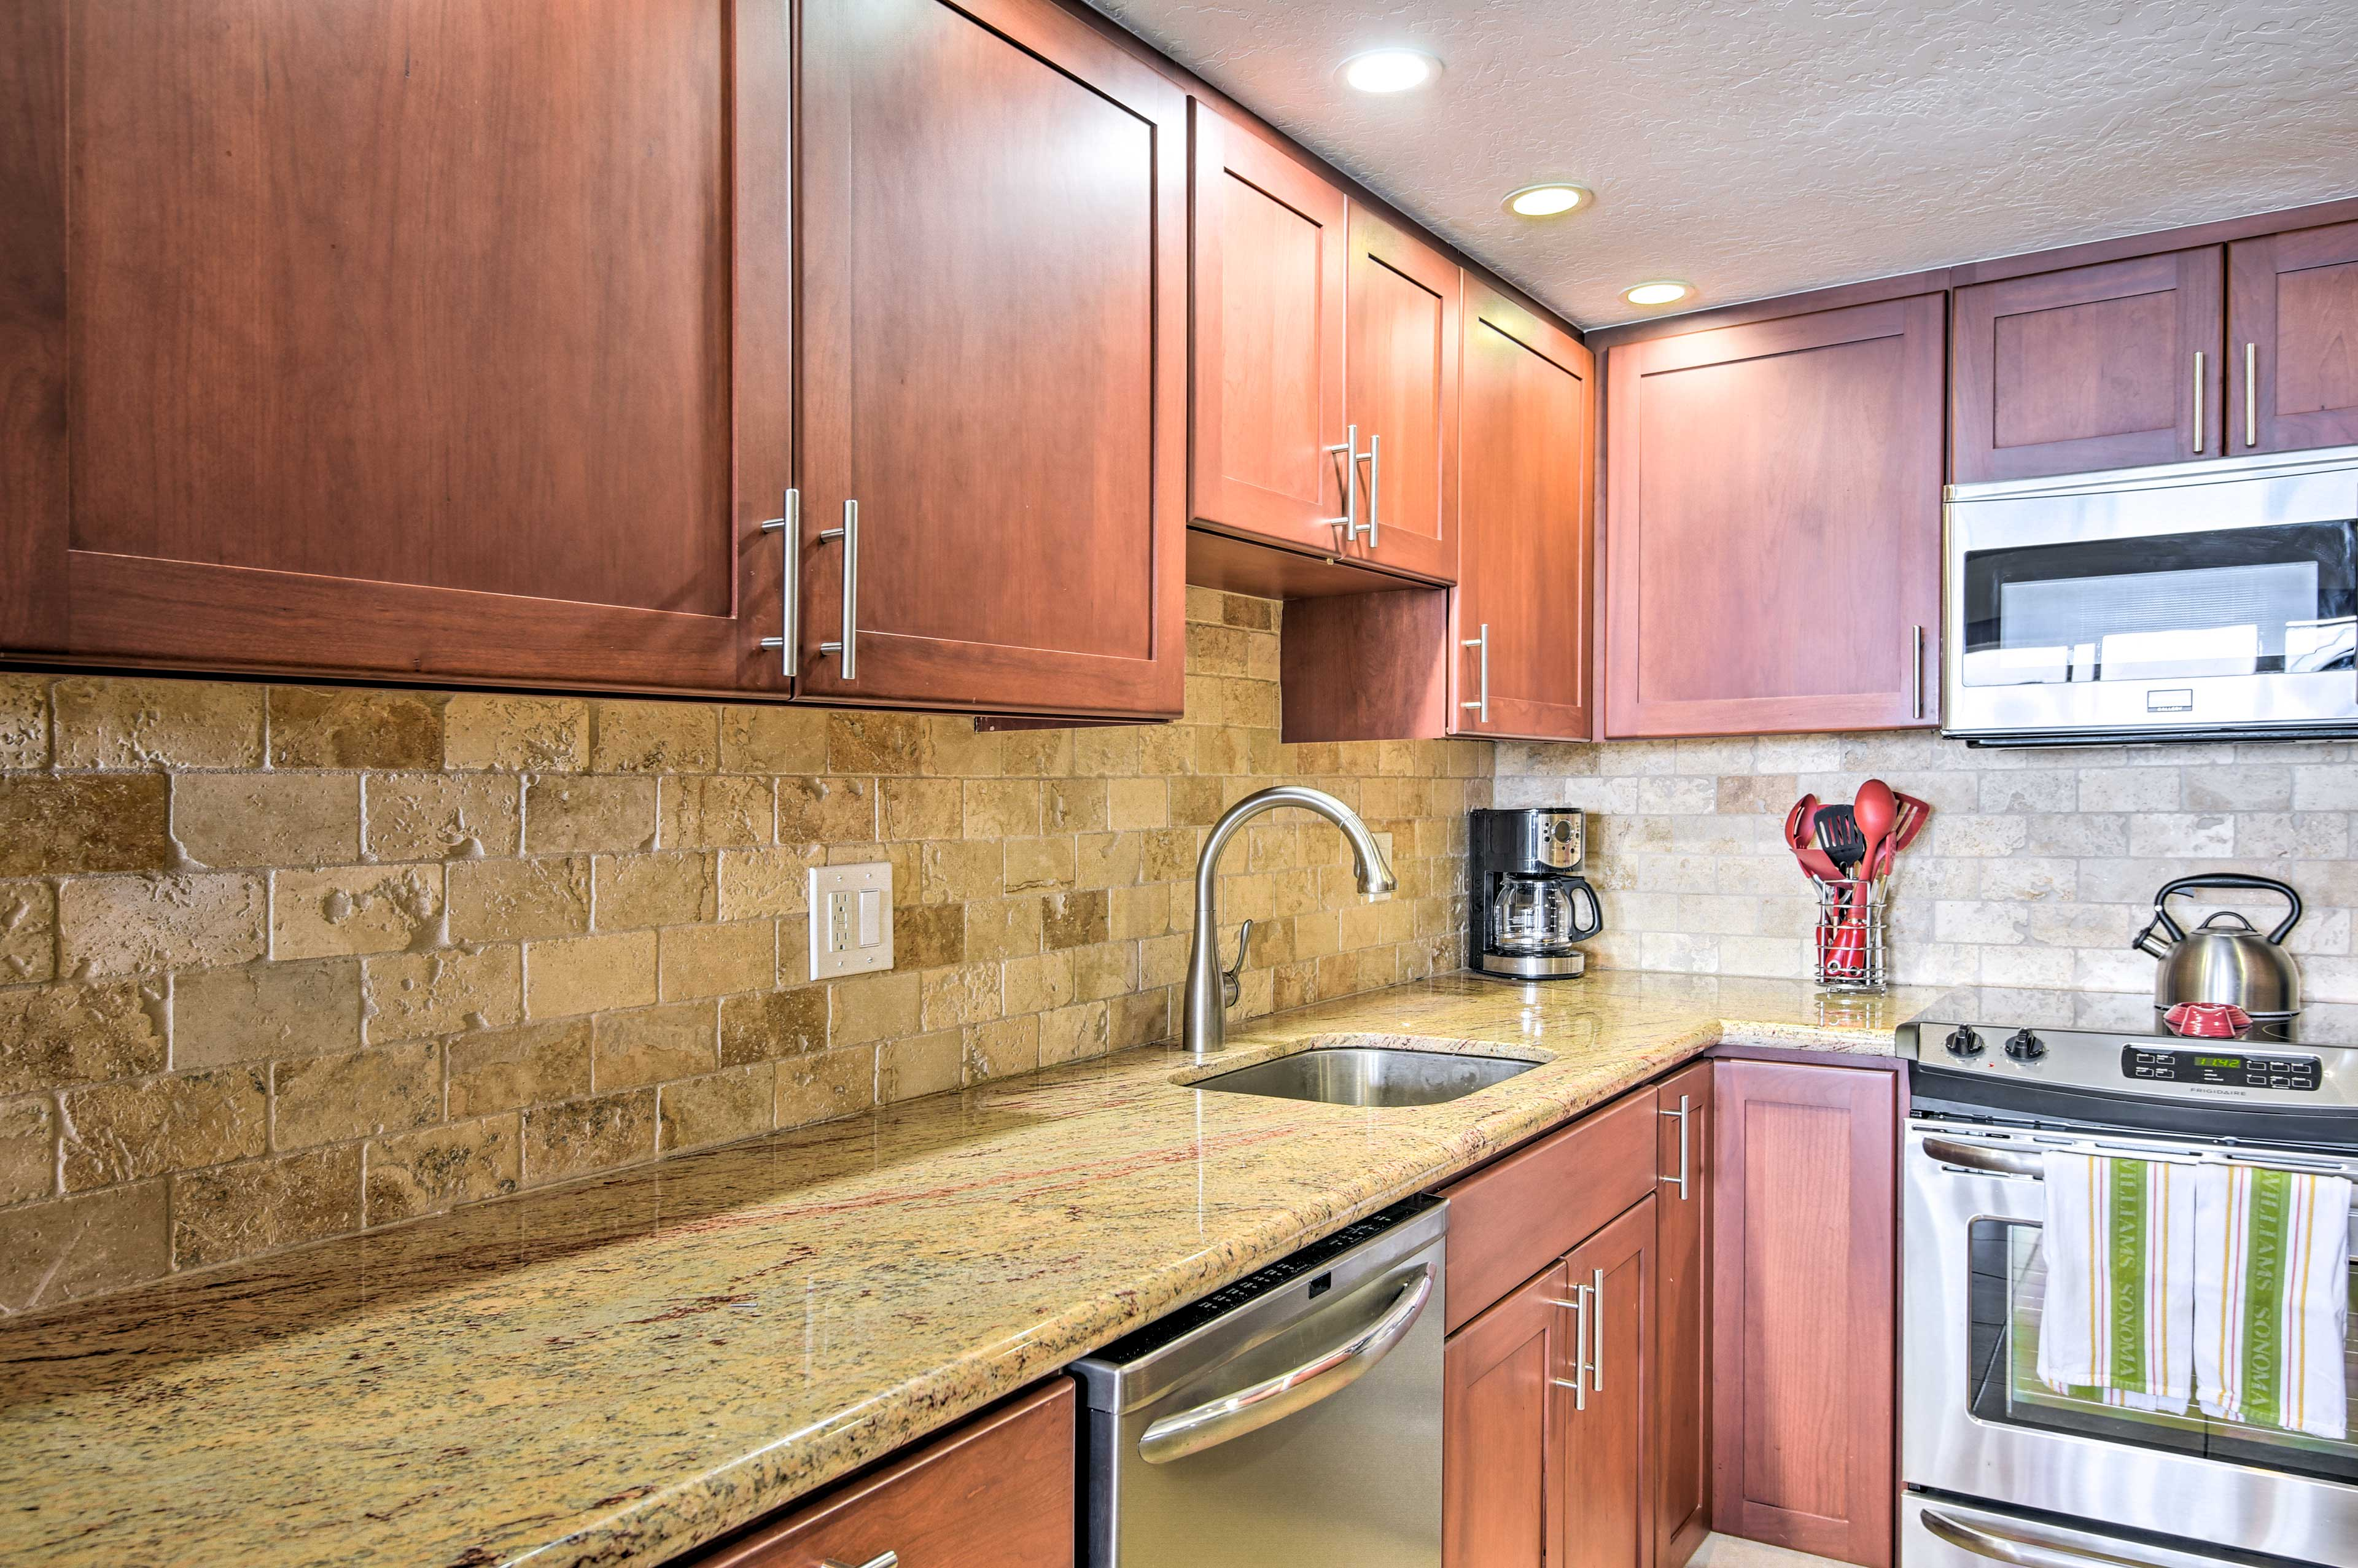 Granite countertops complement the new mahogany cabinets.